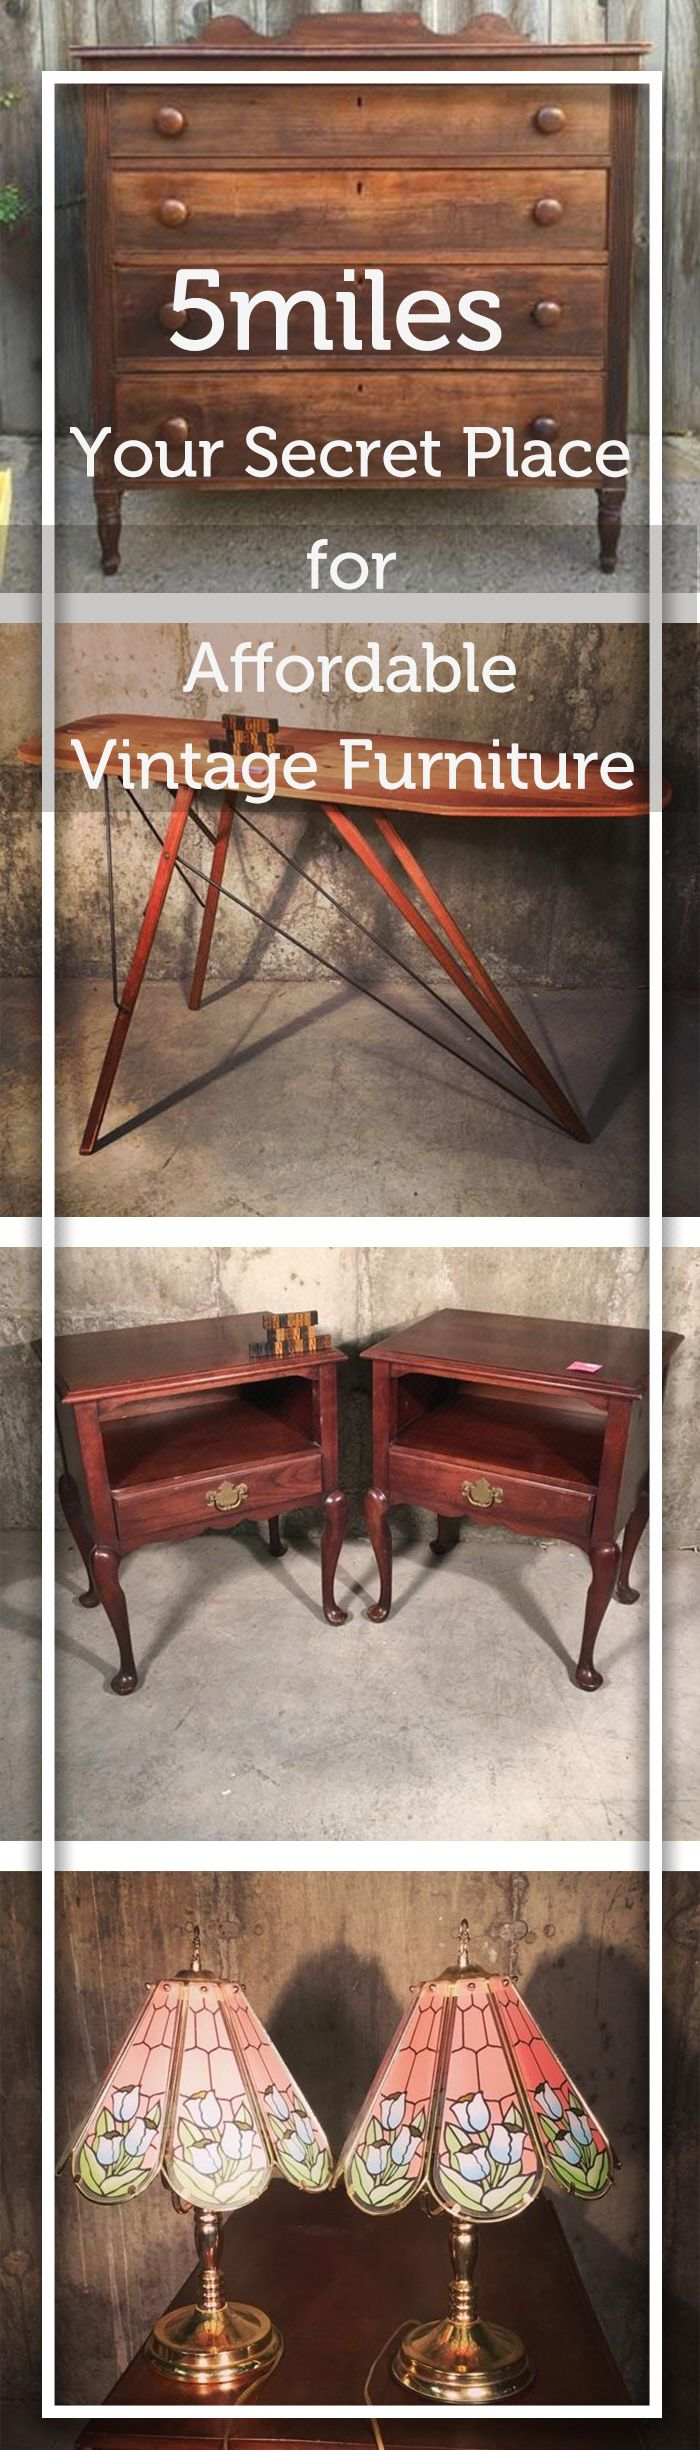 Download 5miles for free to explore antique furniture and home d cor finds  at affordable prices with us  We promise that what you see is what you get. Best 25  Distressed wood furniture ideas on Pinterest   Distressed